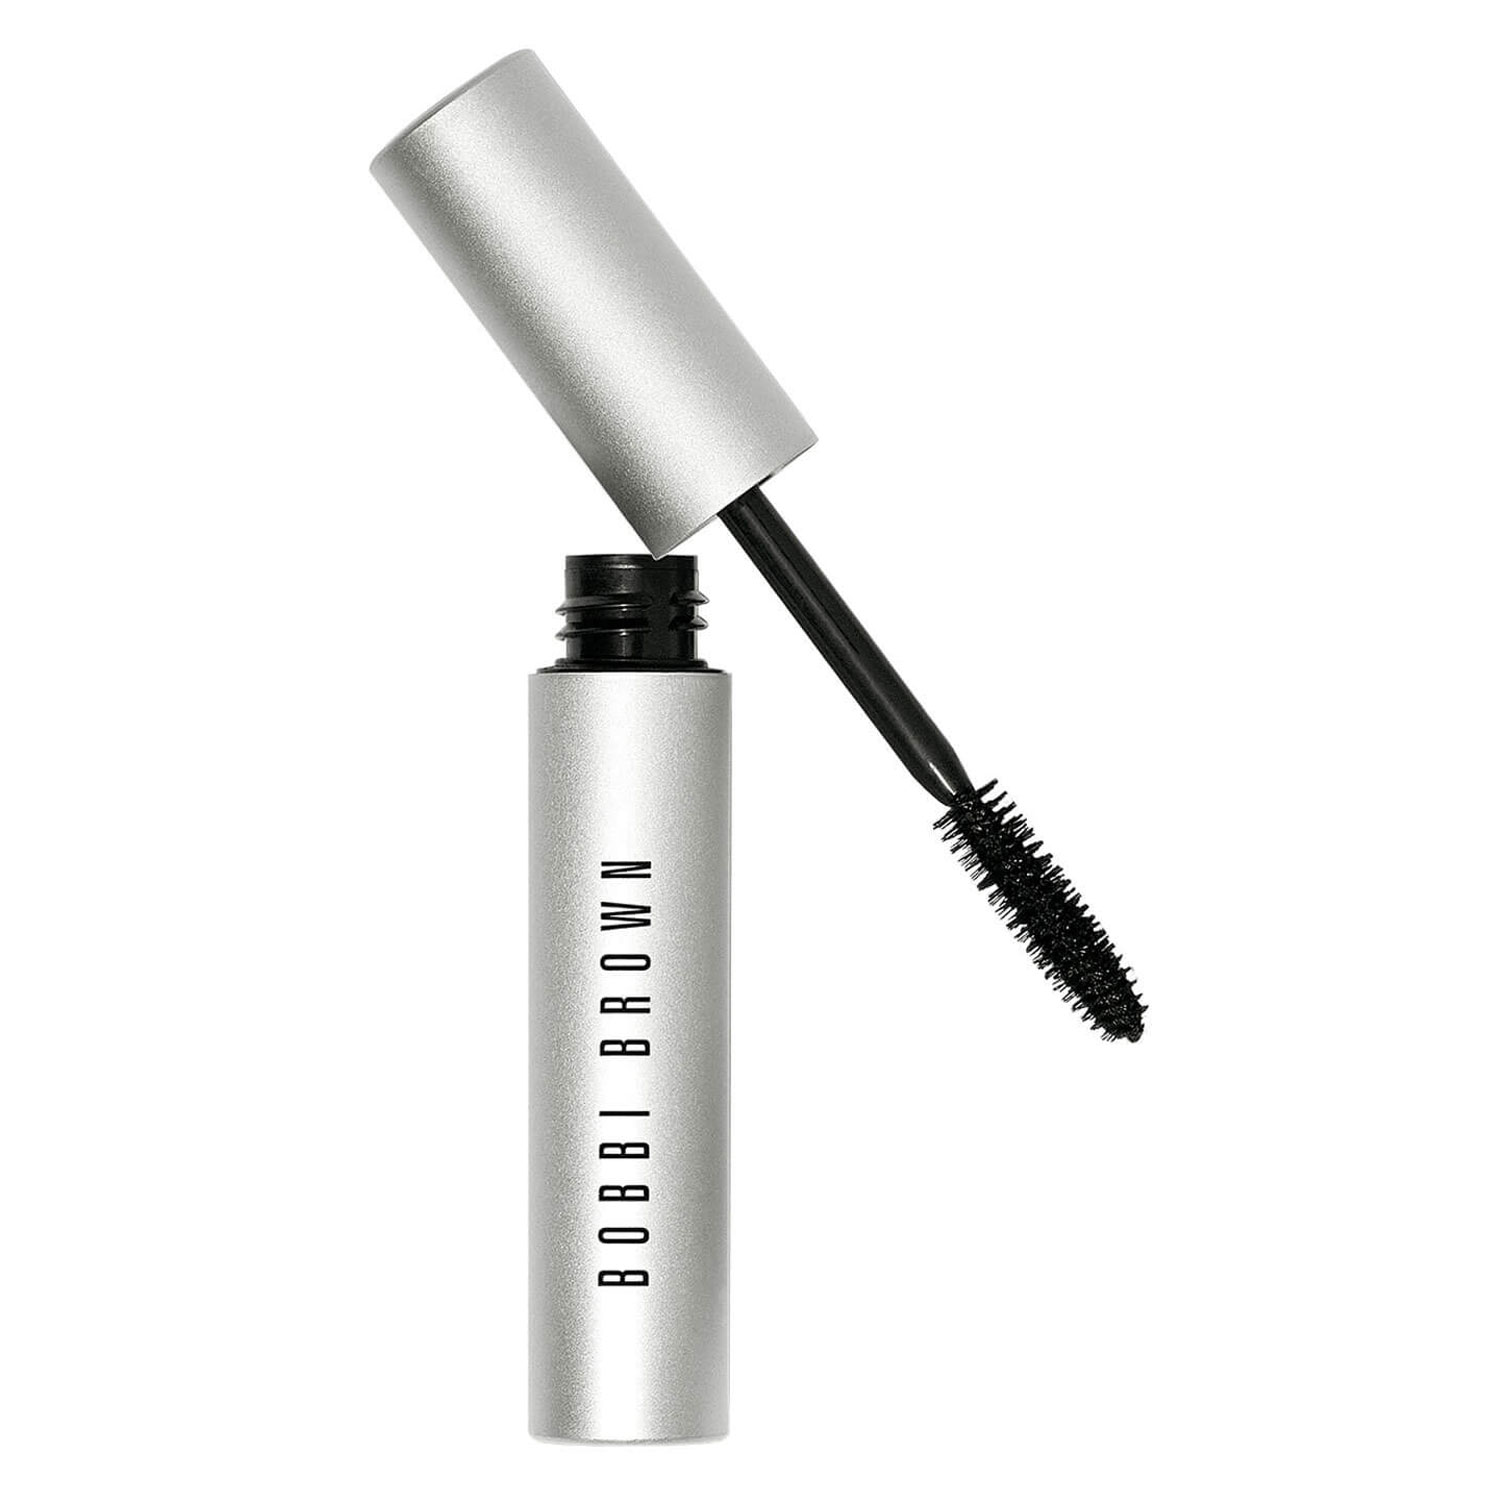 BB Mascara - Smokey Eye Mascara Black - 6ml